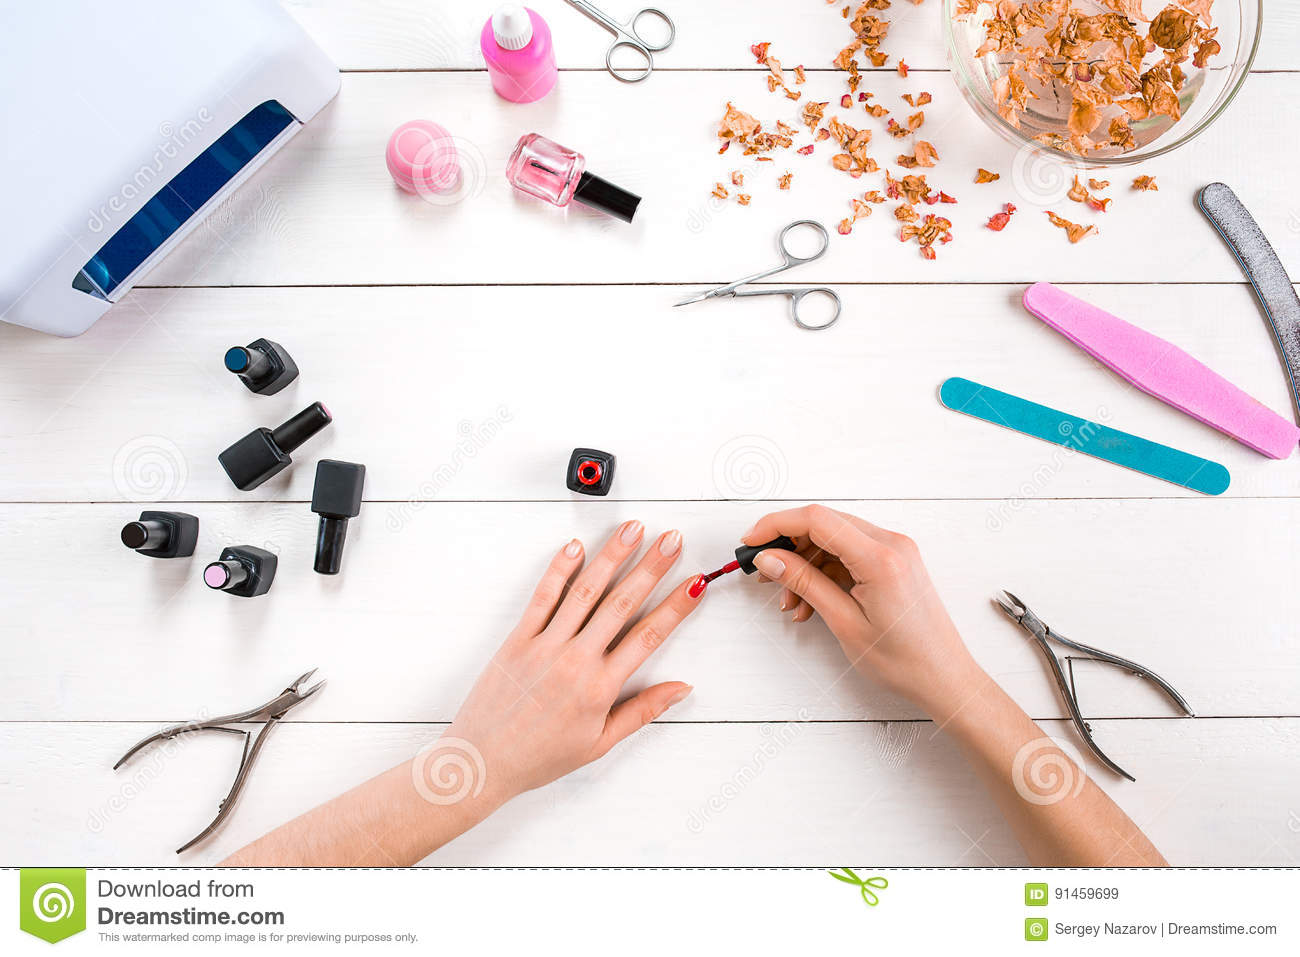 Paint Your Own Nails. Manicure Set And Nail Polish On Wooden ...